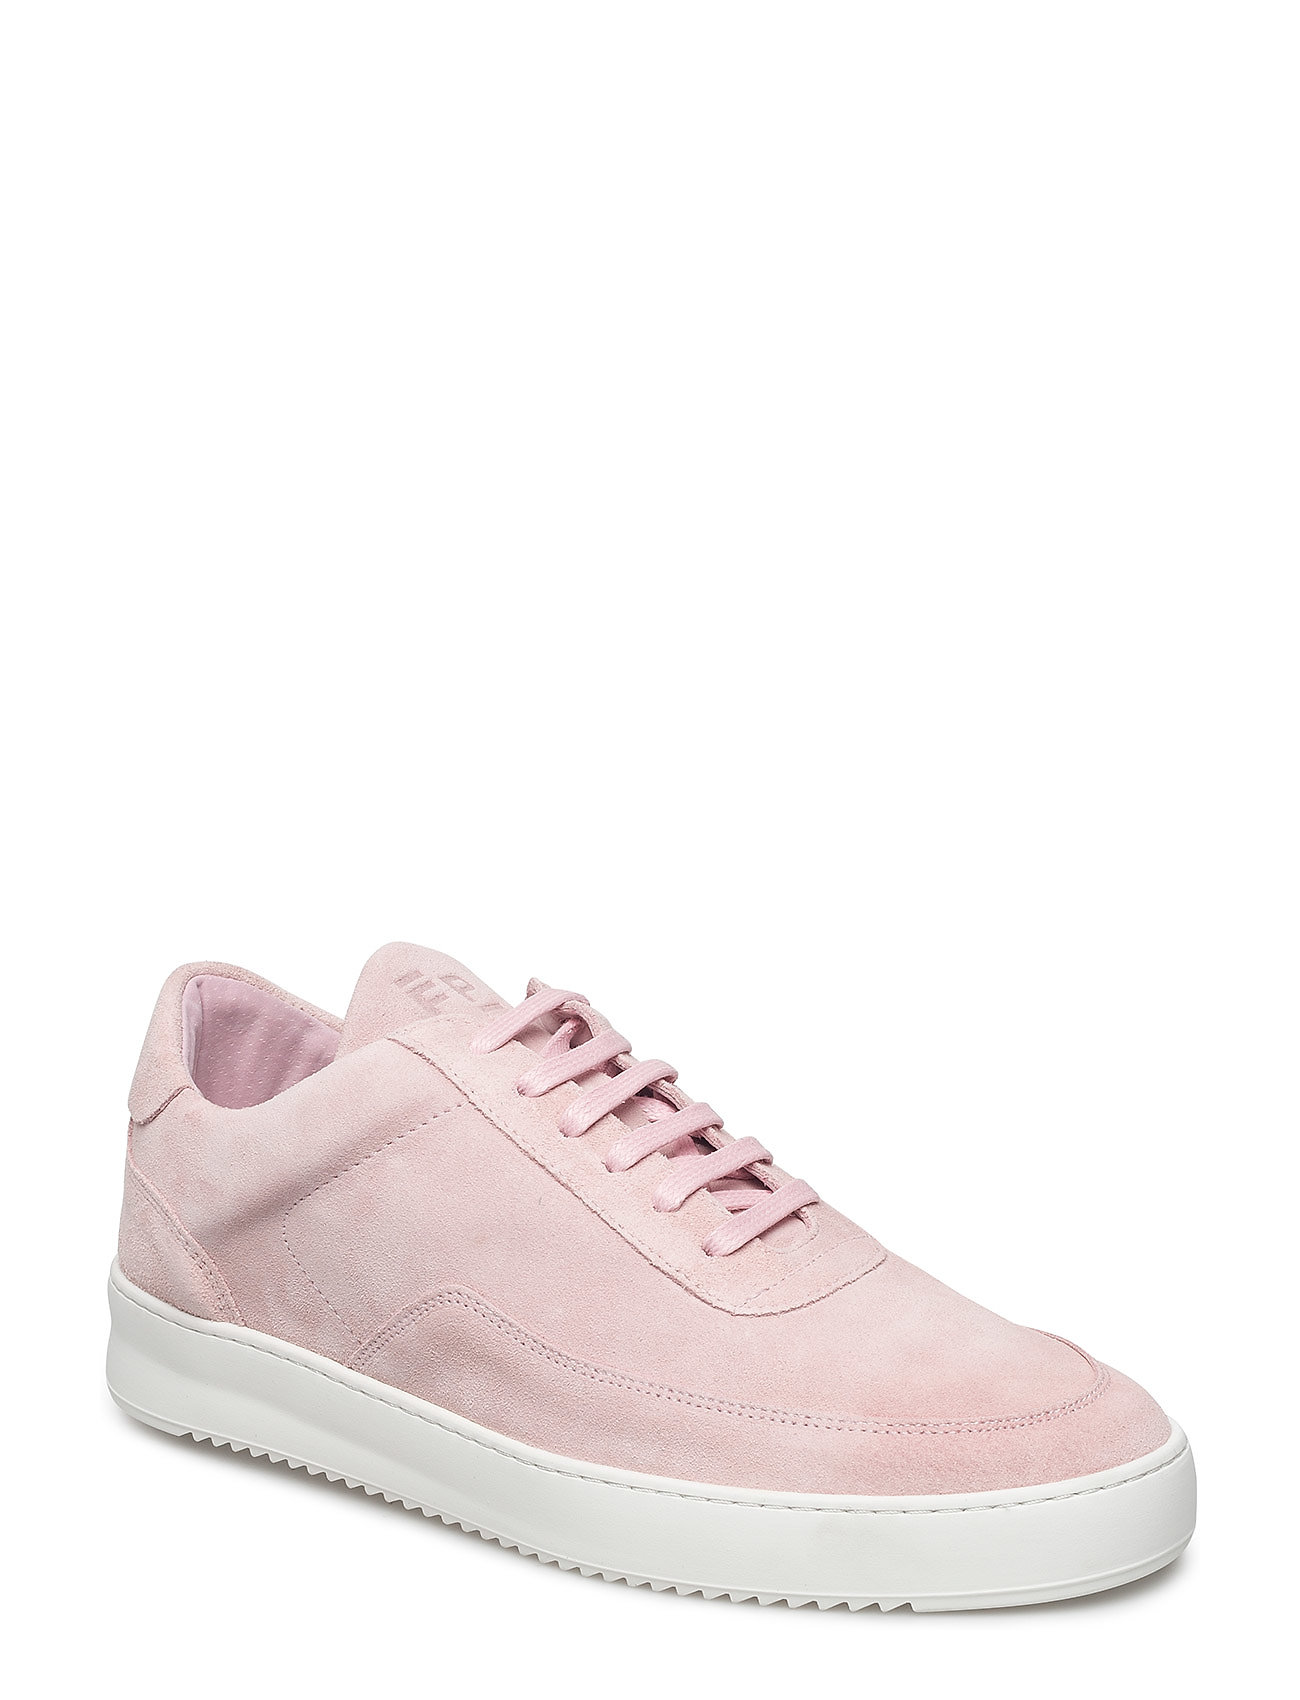 bec3ba26f48220 Filling Pieces Low Mondo Ripple Nardo (Light Pink)